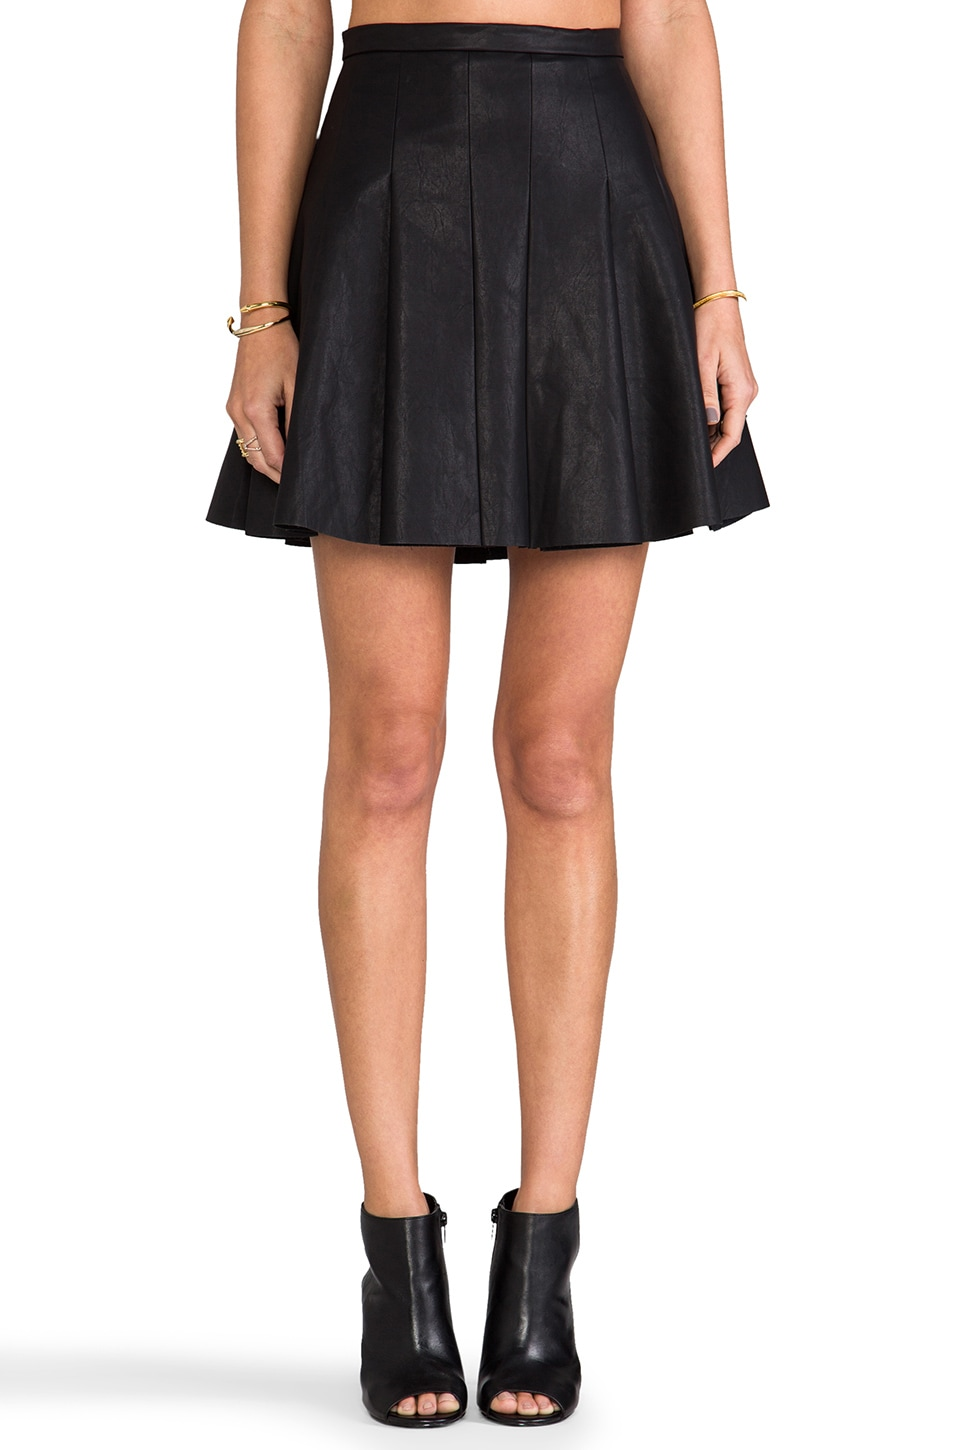 Finders Keepers New Earth Skirt in Black